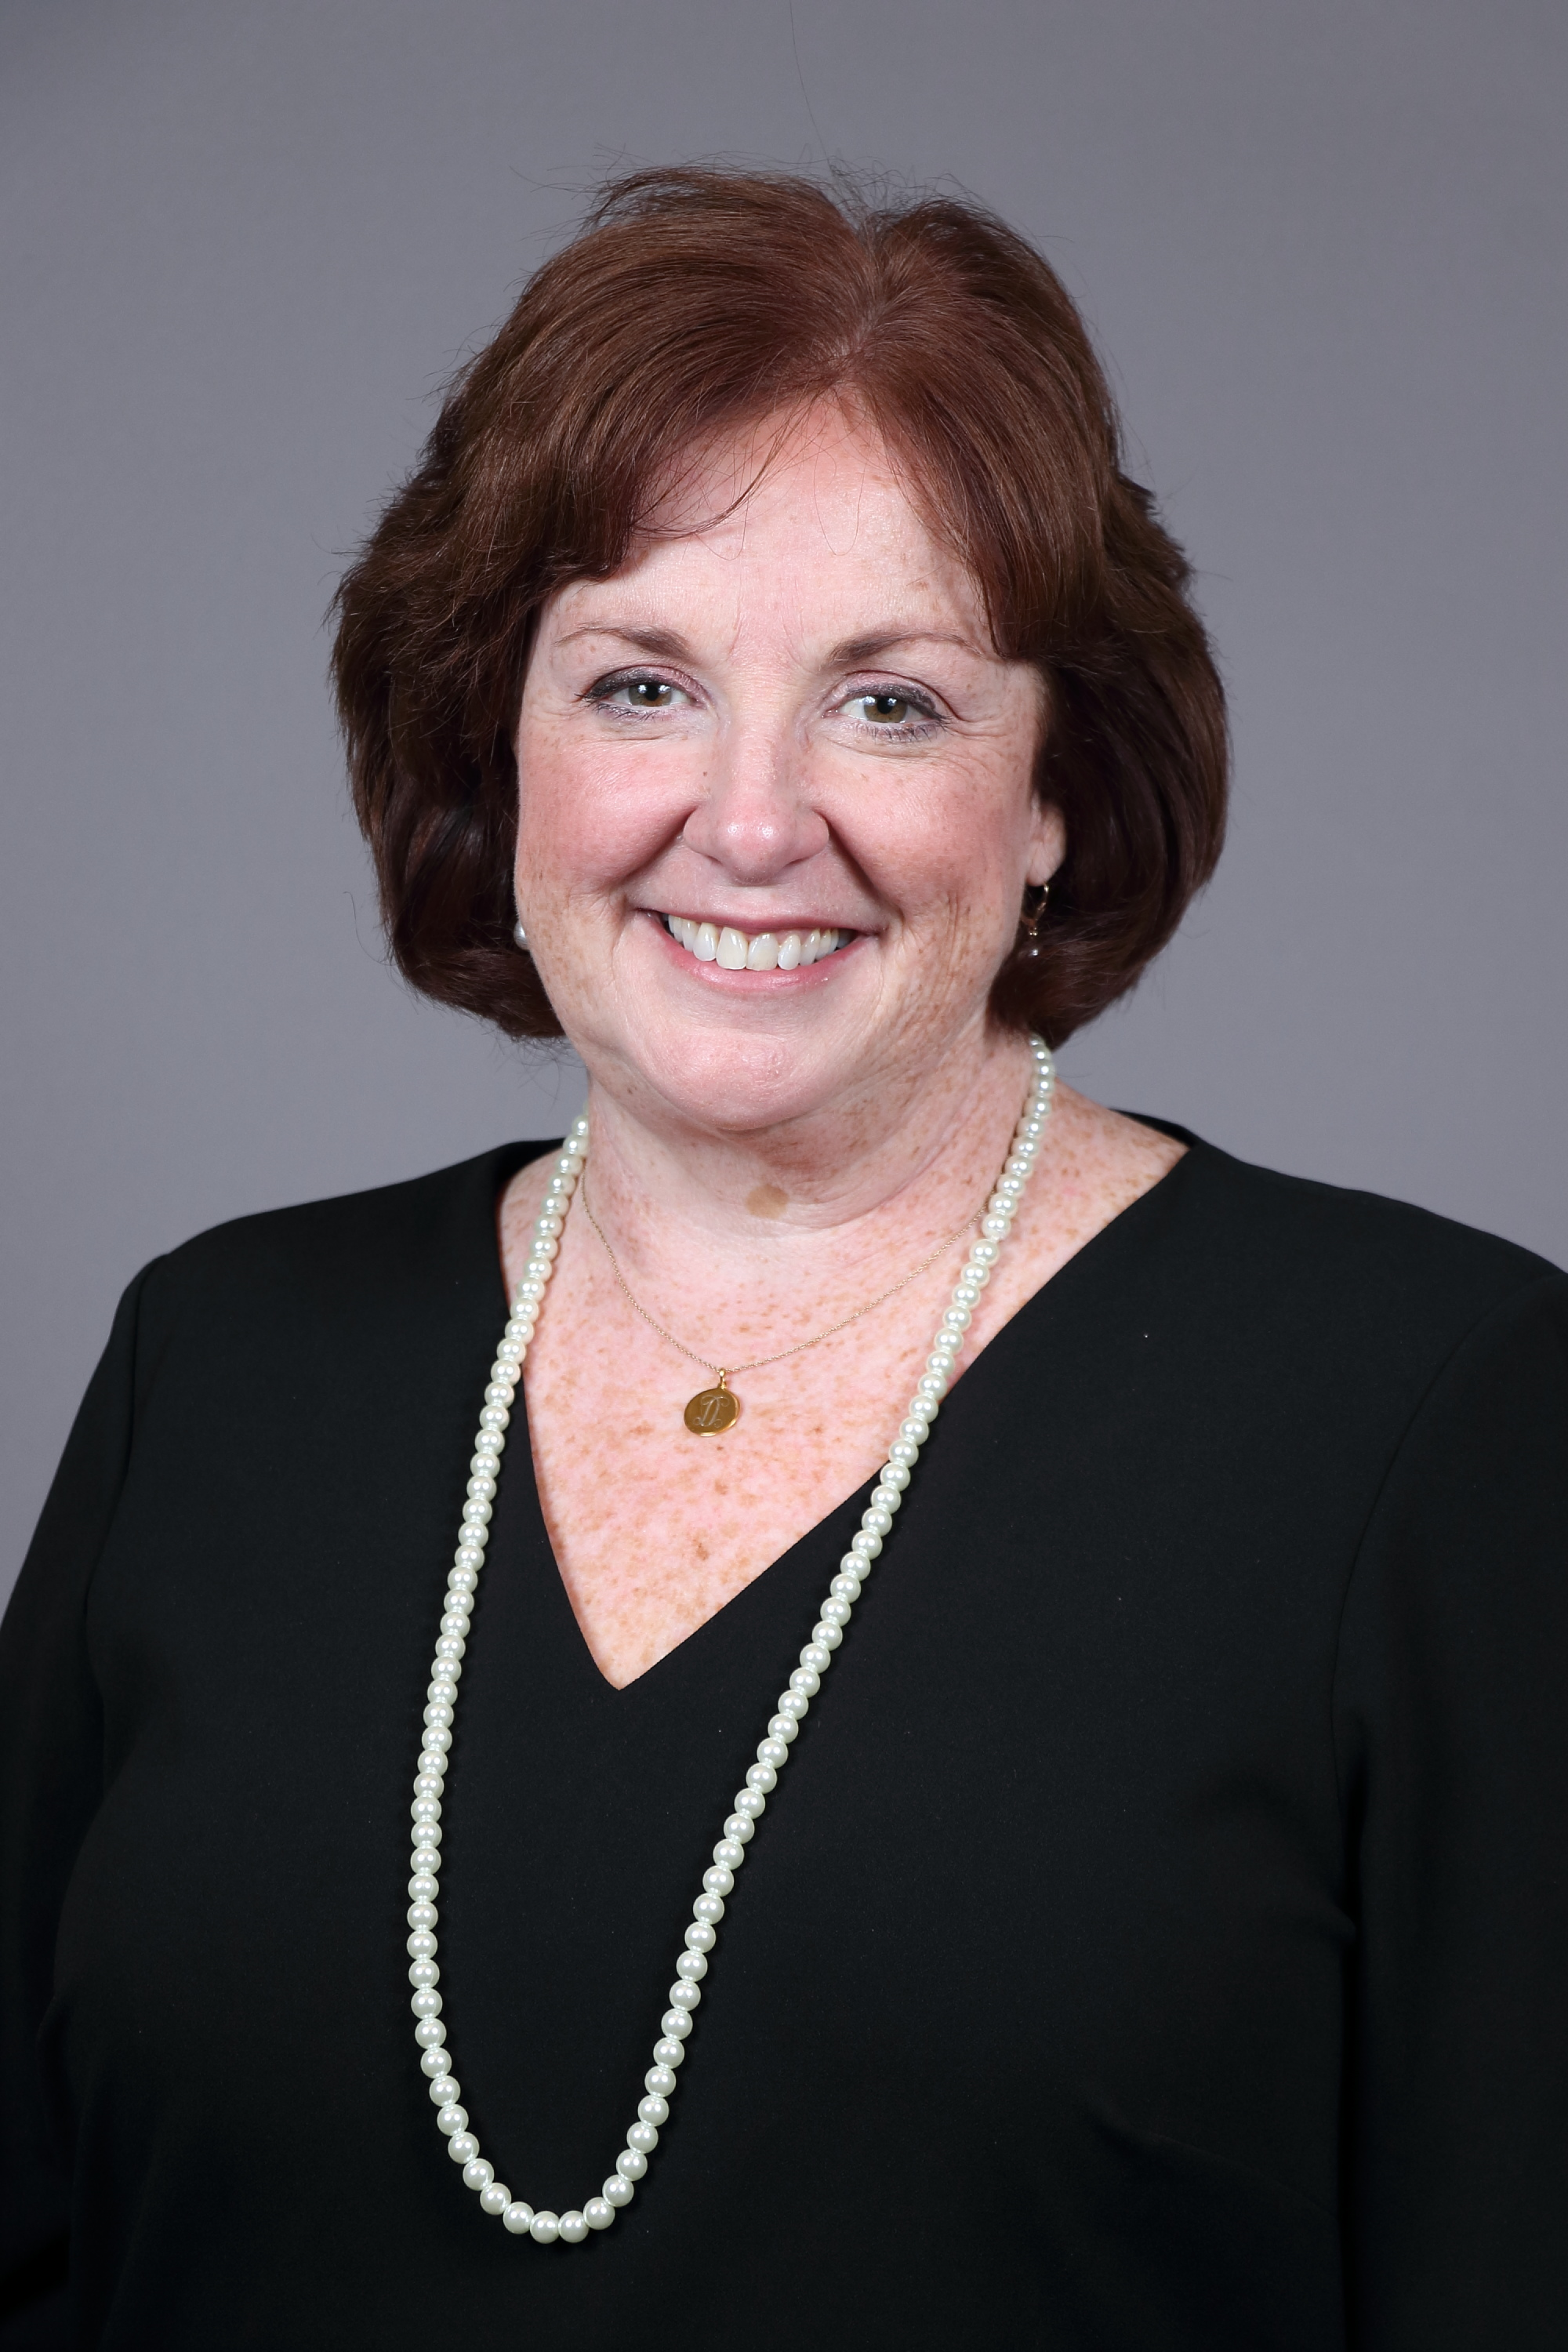 Denise Sheehan Headshot